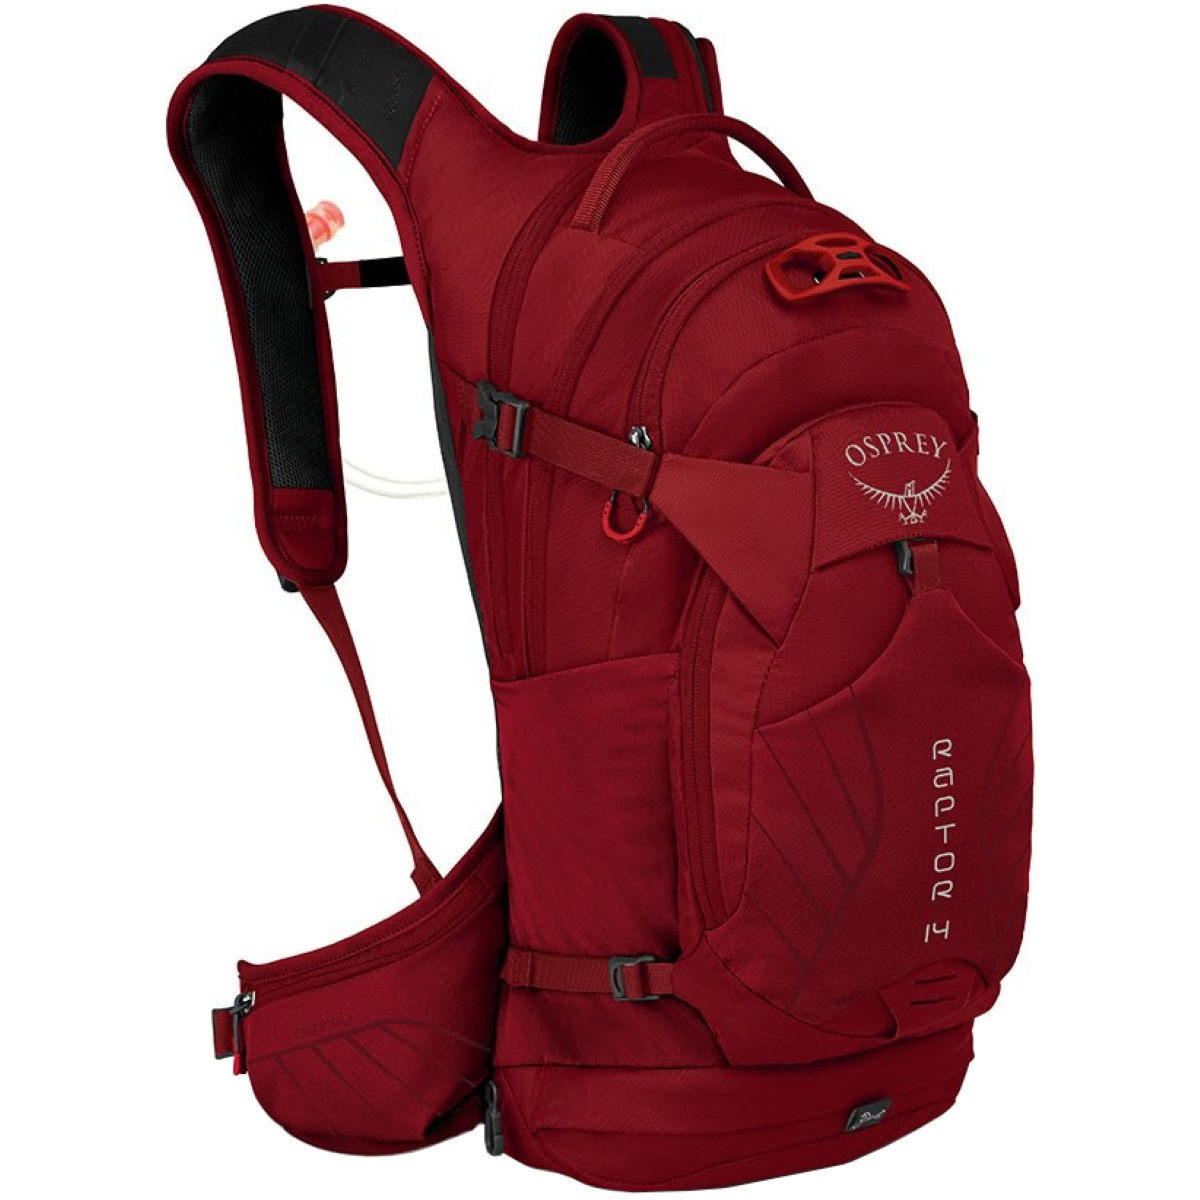 Osprey Osprey Raptor 14 Hydration Pack   Hydration Packs